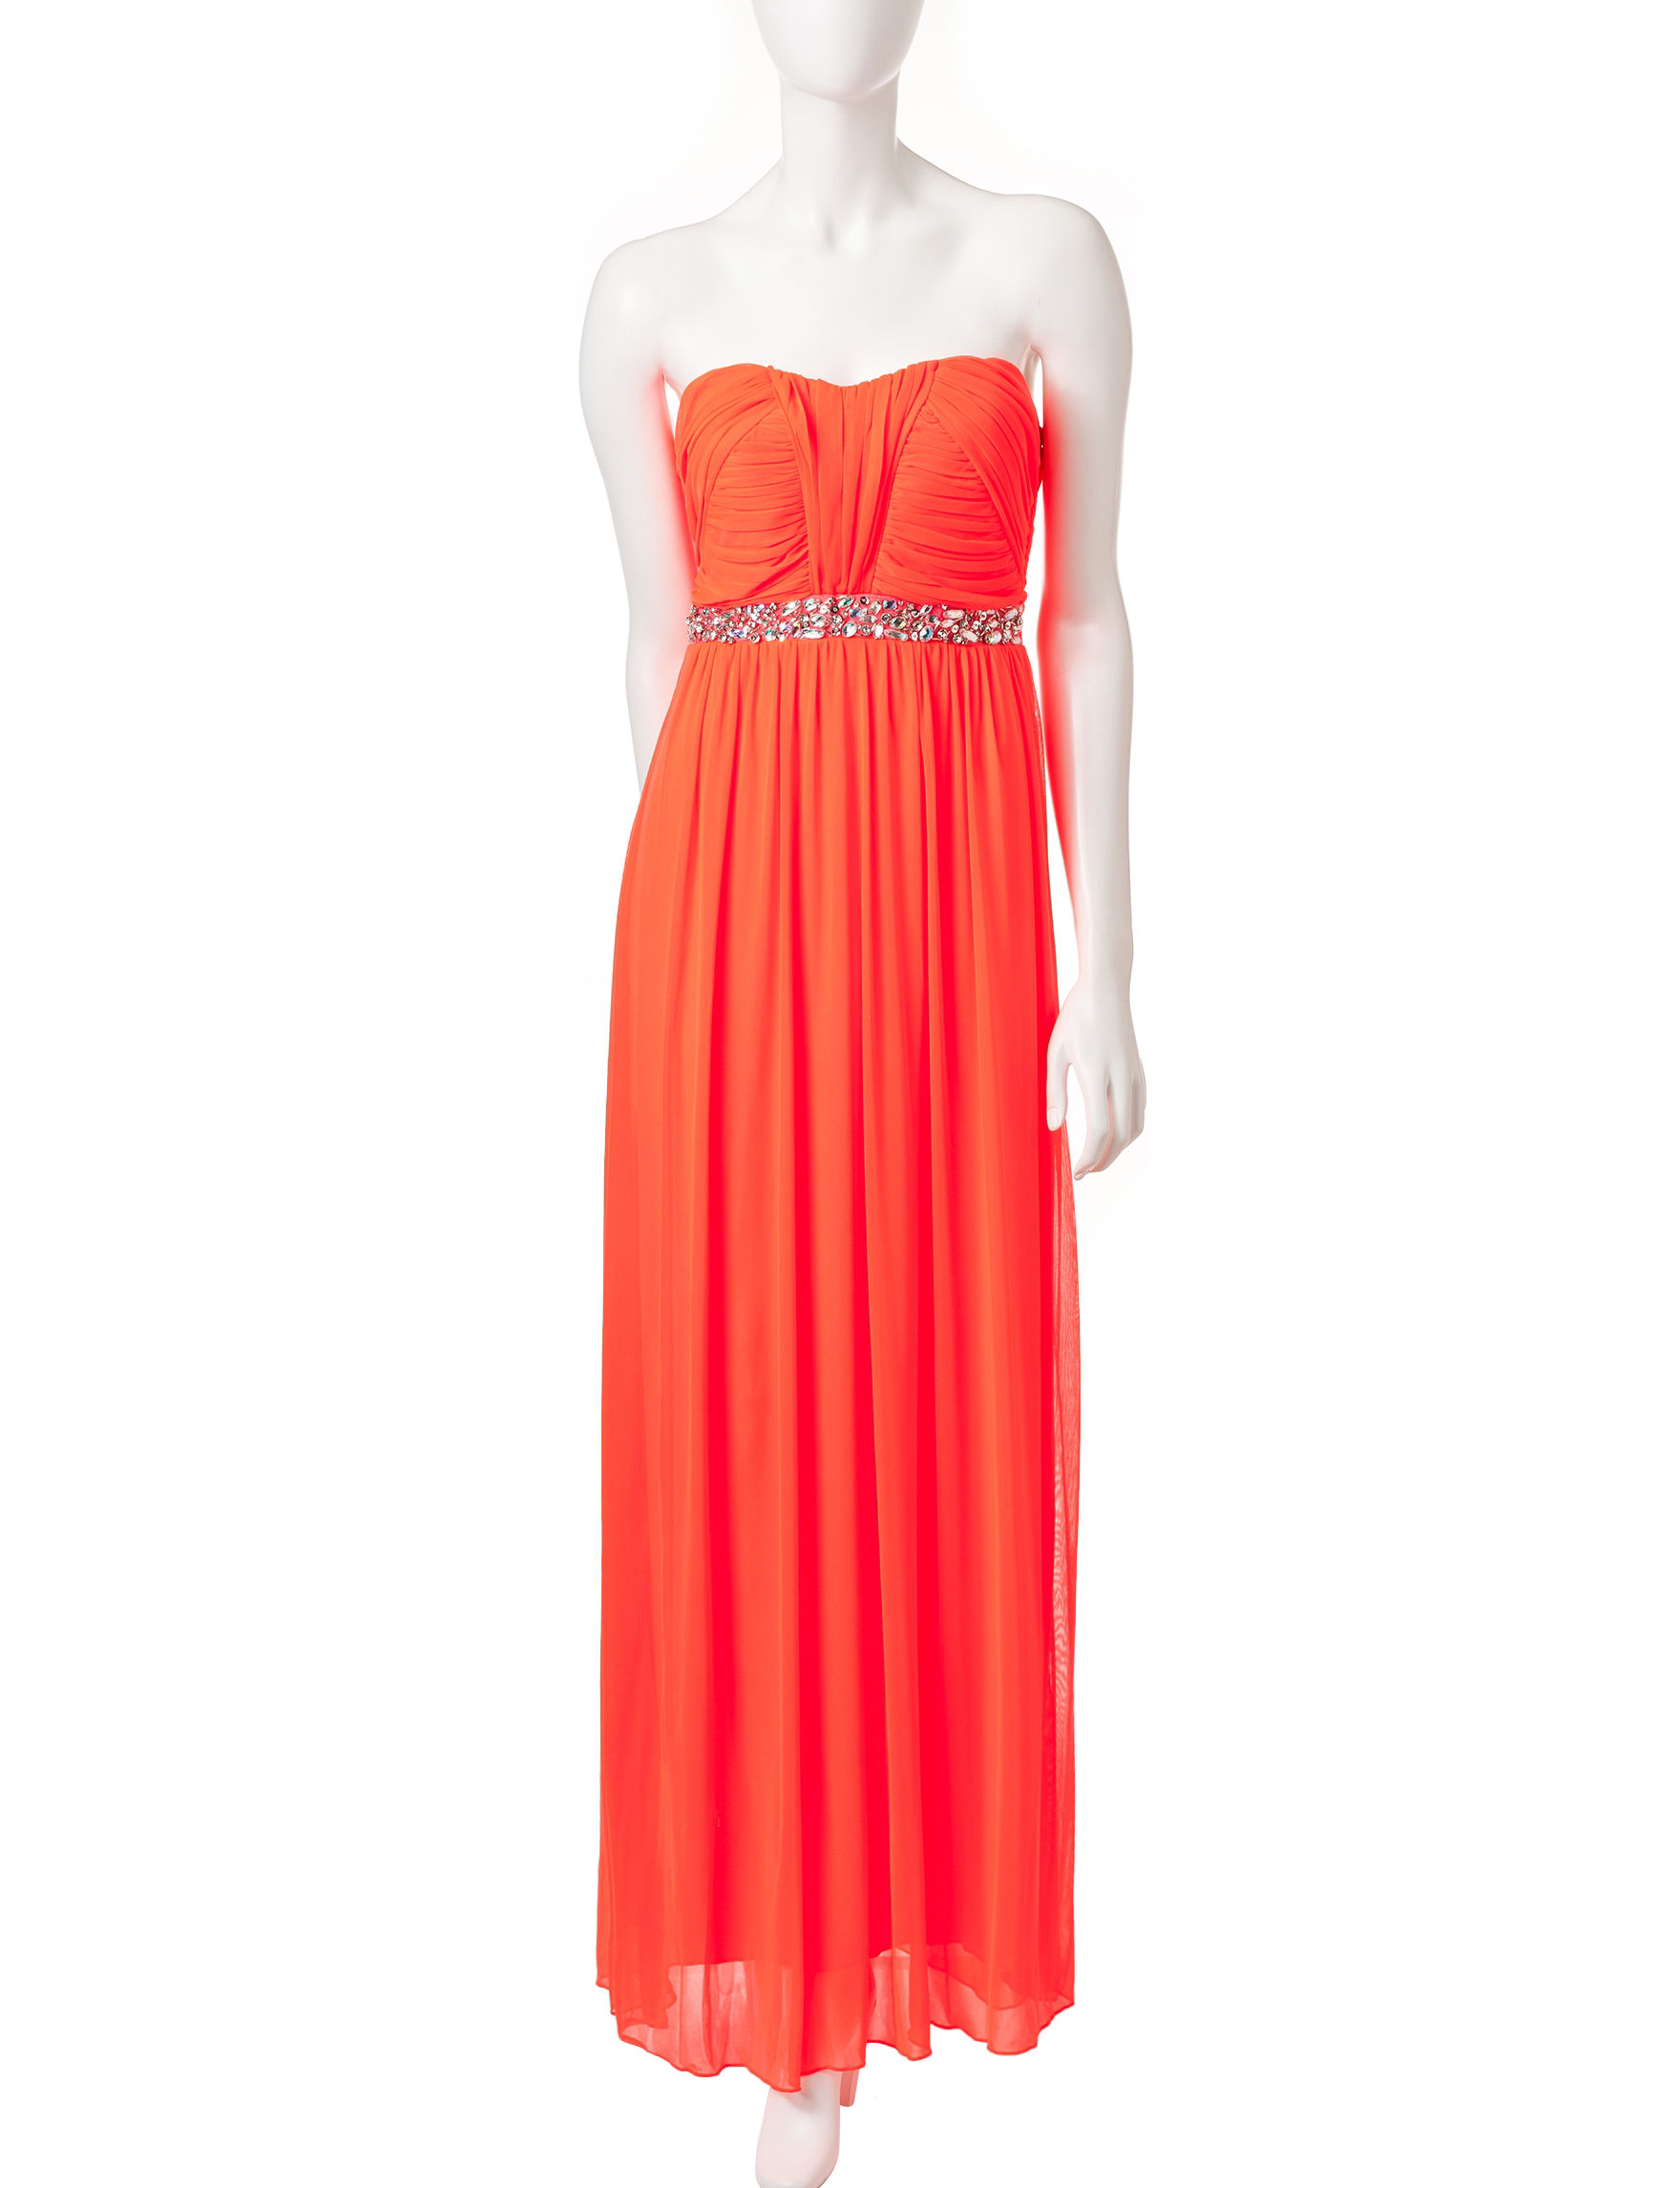 City Triangles Neon Coral Evening & Formal Sheath Dresses